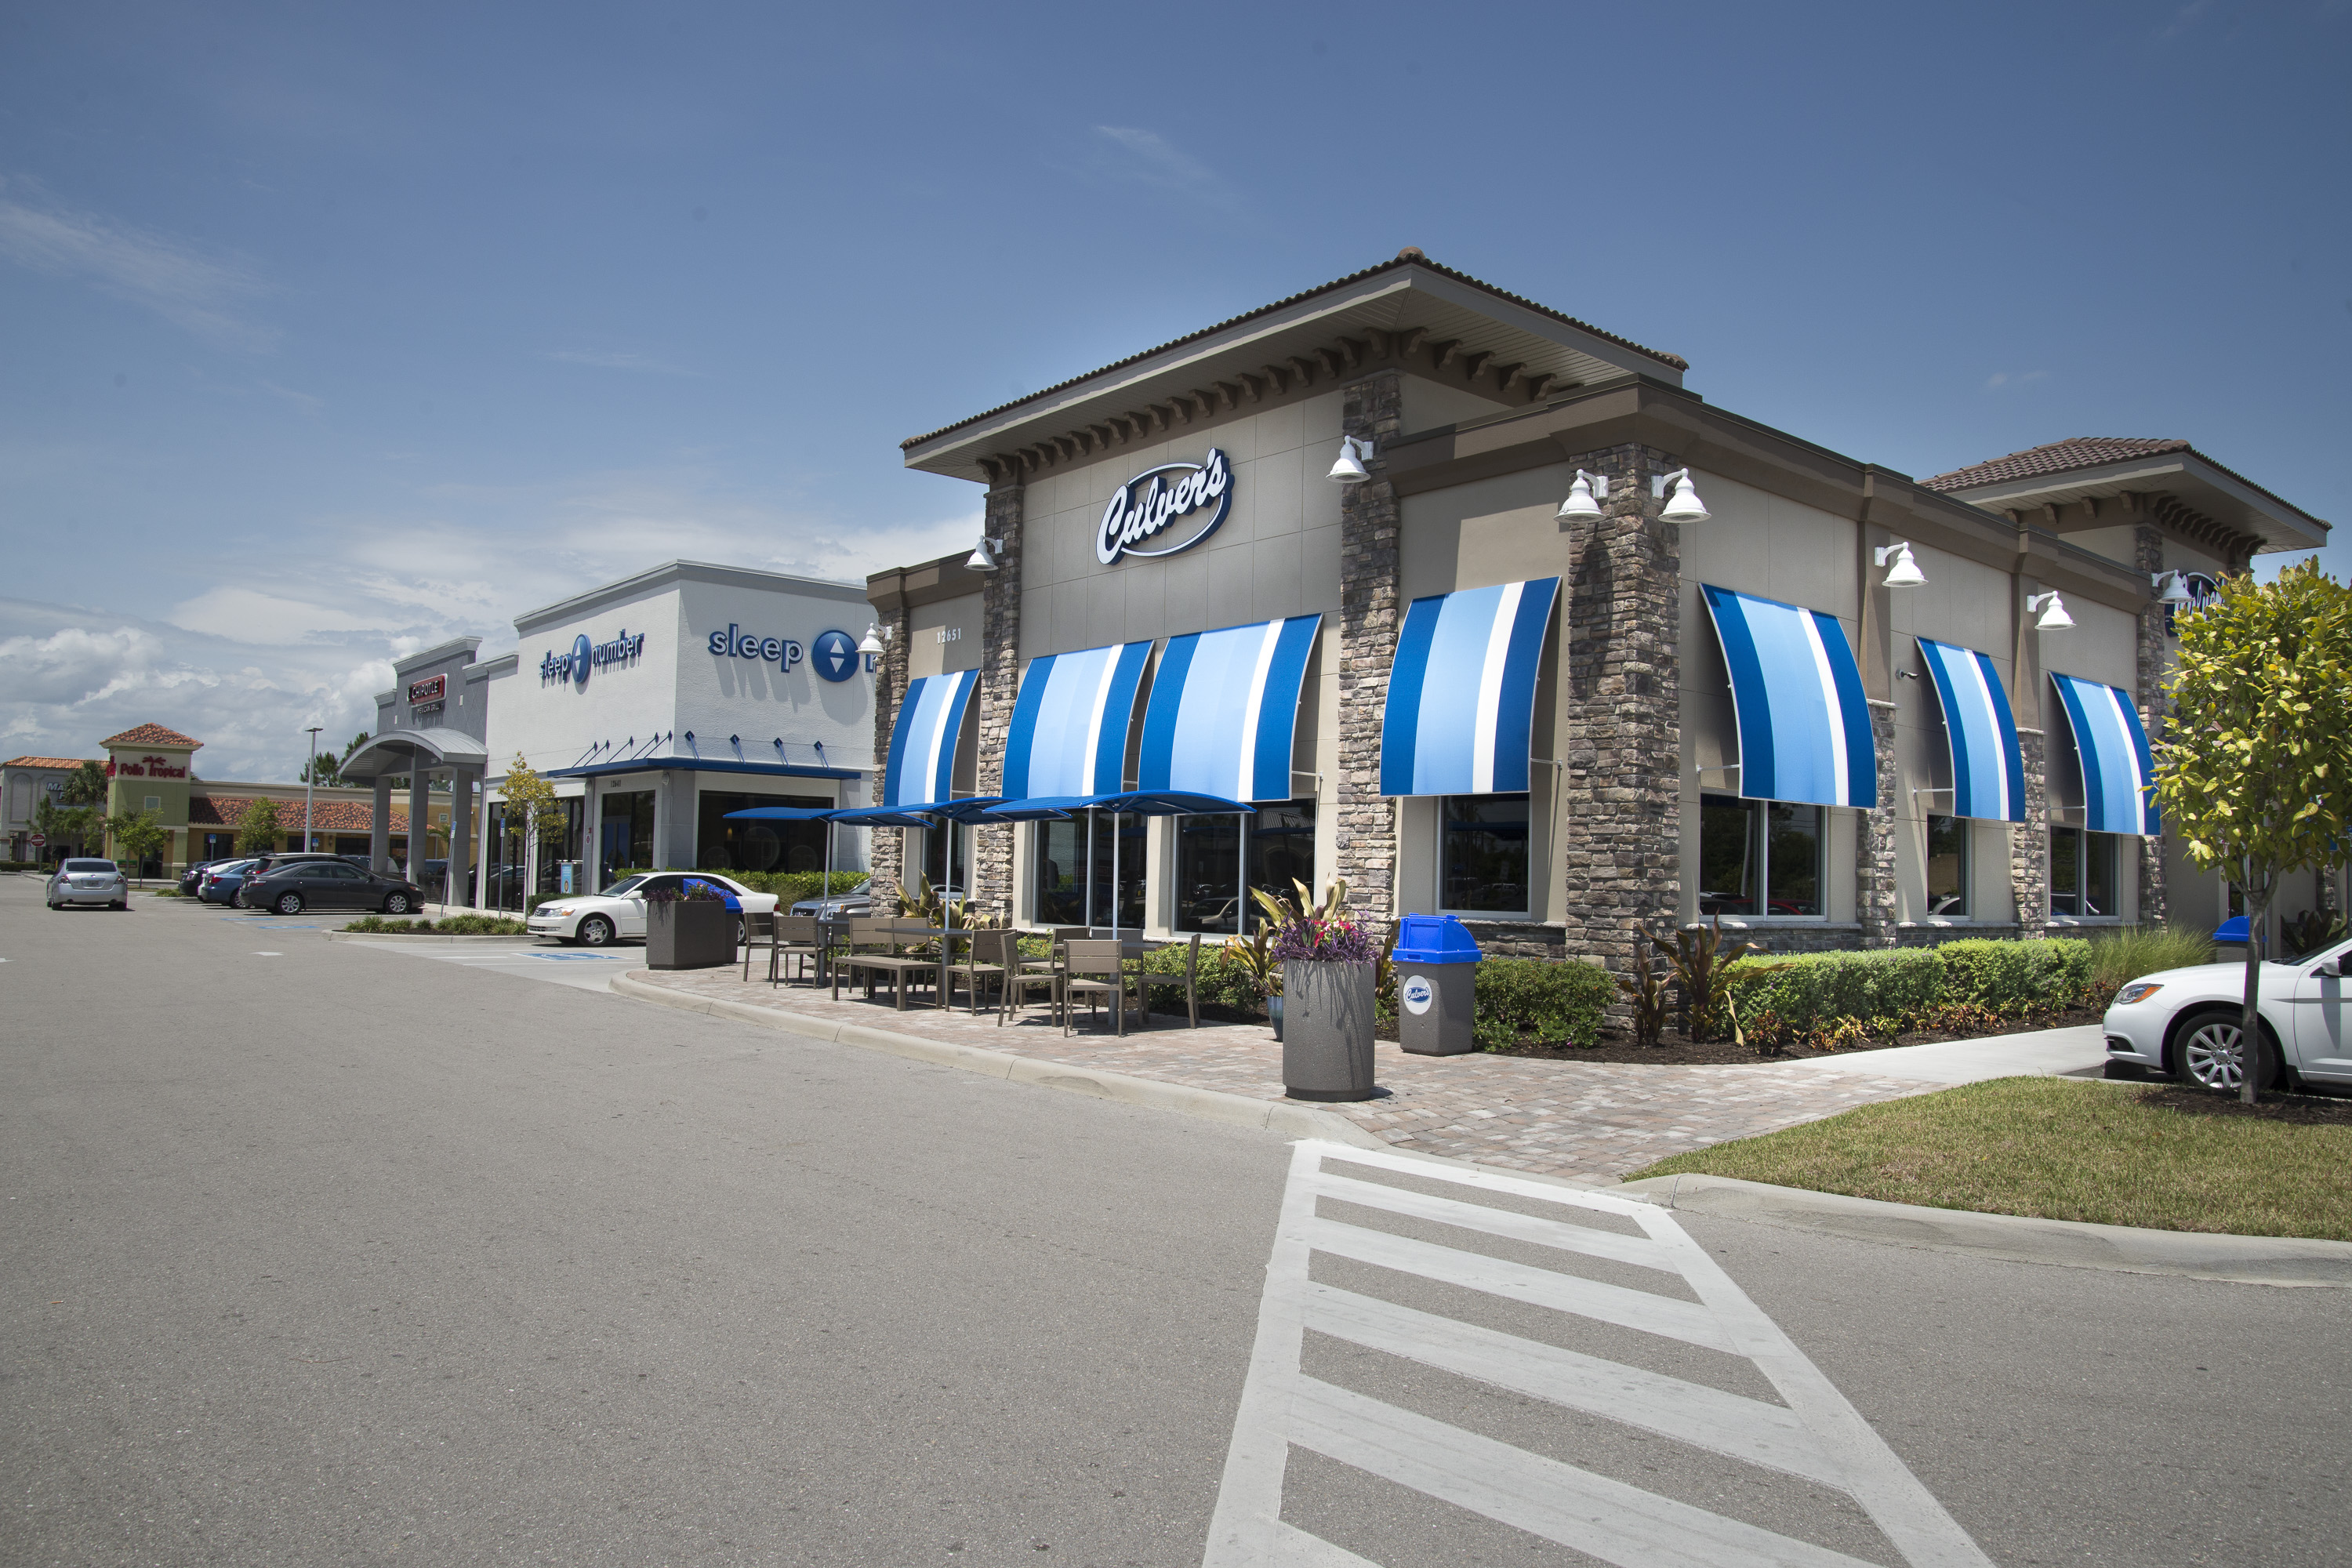 Culver's - Constructed 8 grand opening locations with even more locations to come.